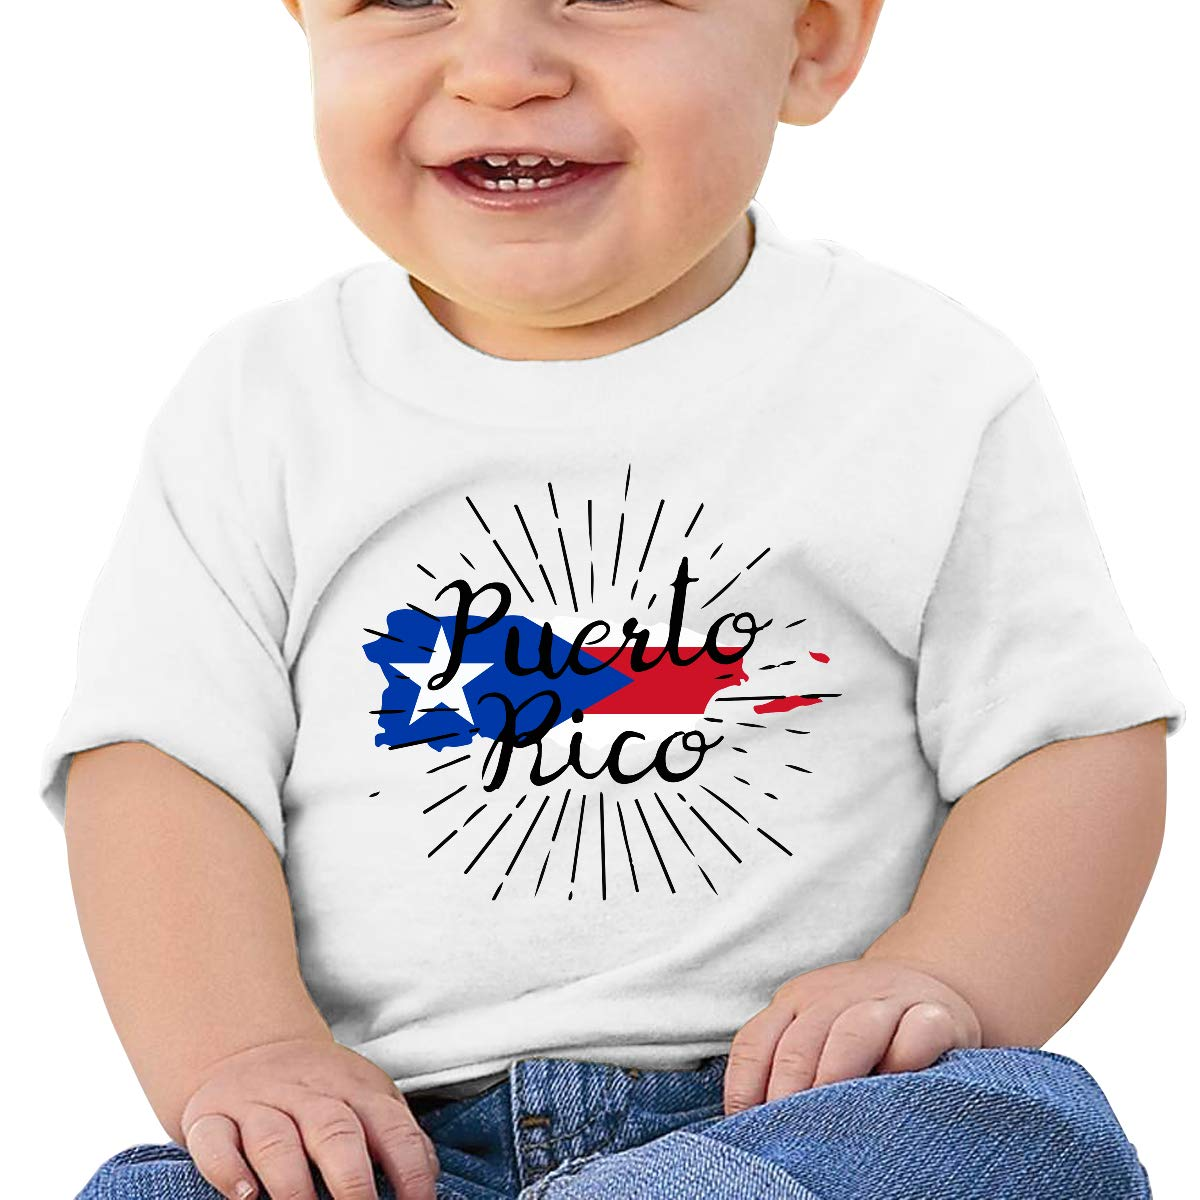 Puerto Rico Baby Boys Girls Short Sleeve Crew Neck Tee Shirt 6-18 Month Tops